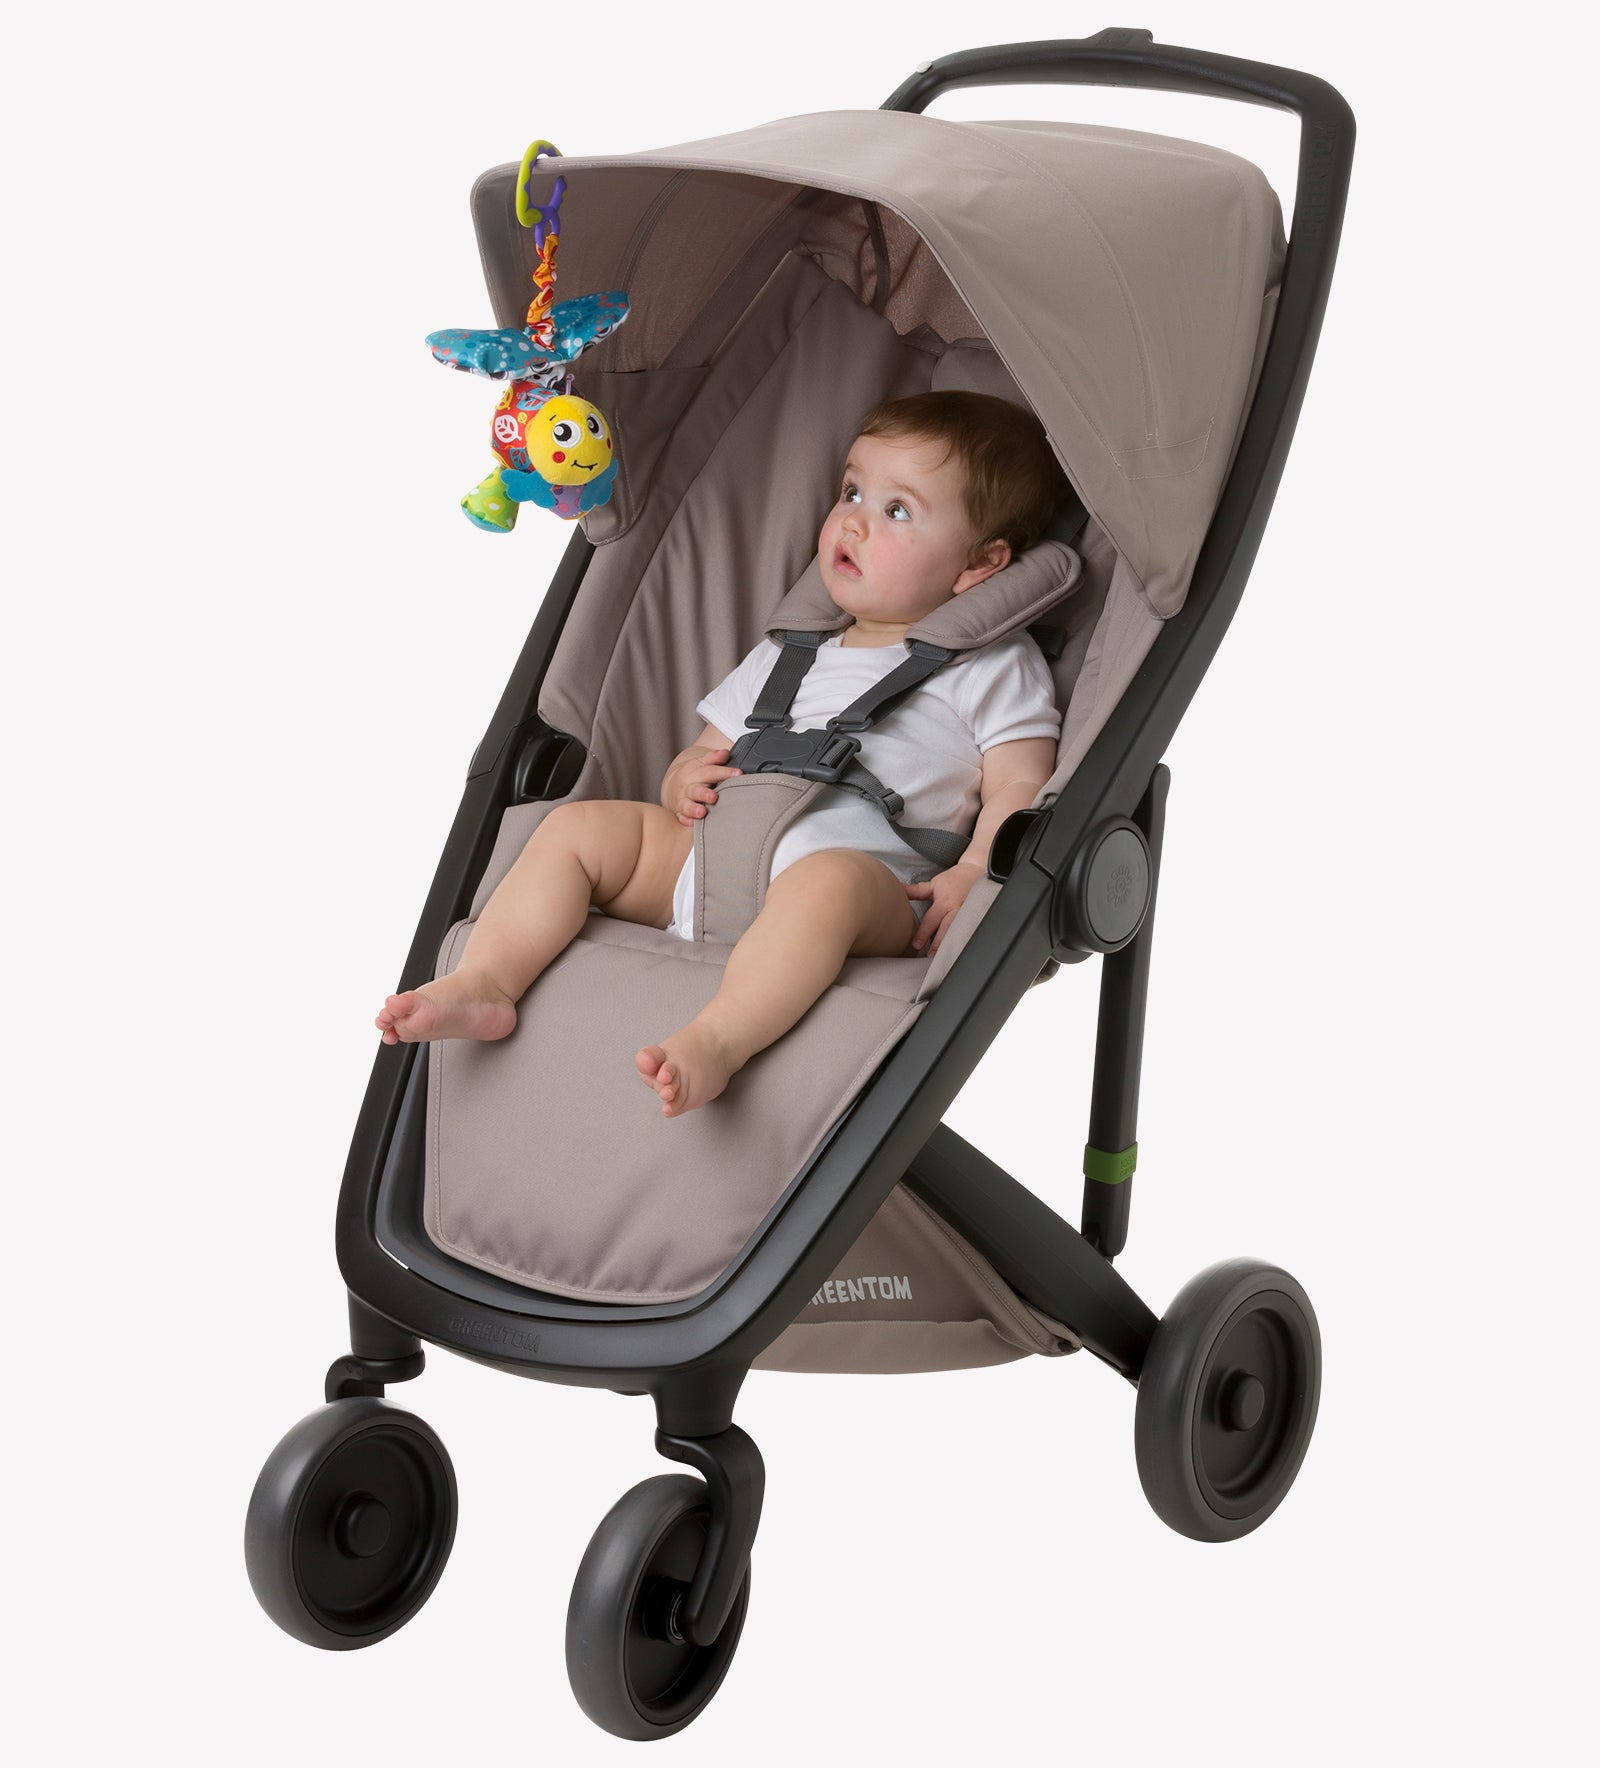 A toddler boy sitting on the stroller with Playgro stroller toy attached on the stroller canopy